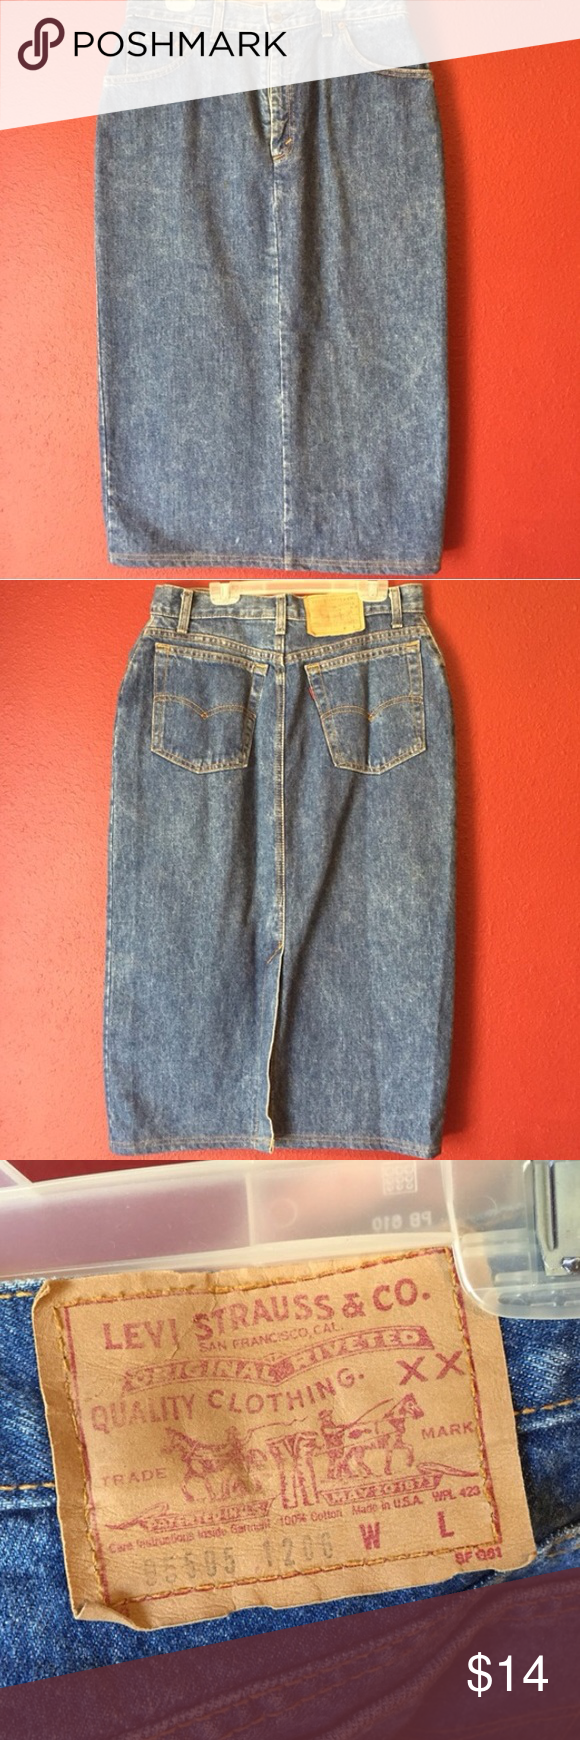 Levi pencil skirt Size 10. It says 13 but it runs small unless you have a really small waist. In perfect condition. Slit in the back. Hits right below the knee. *smoke free home*all clothes washed before being shipped* Levi's Skirts Pencil